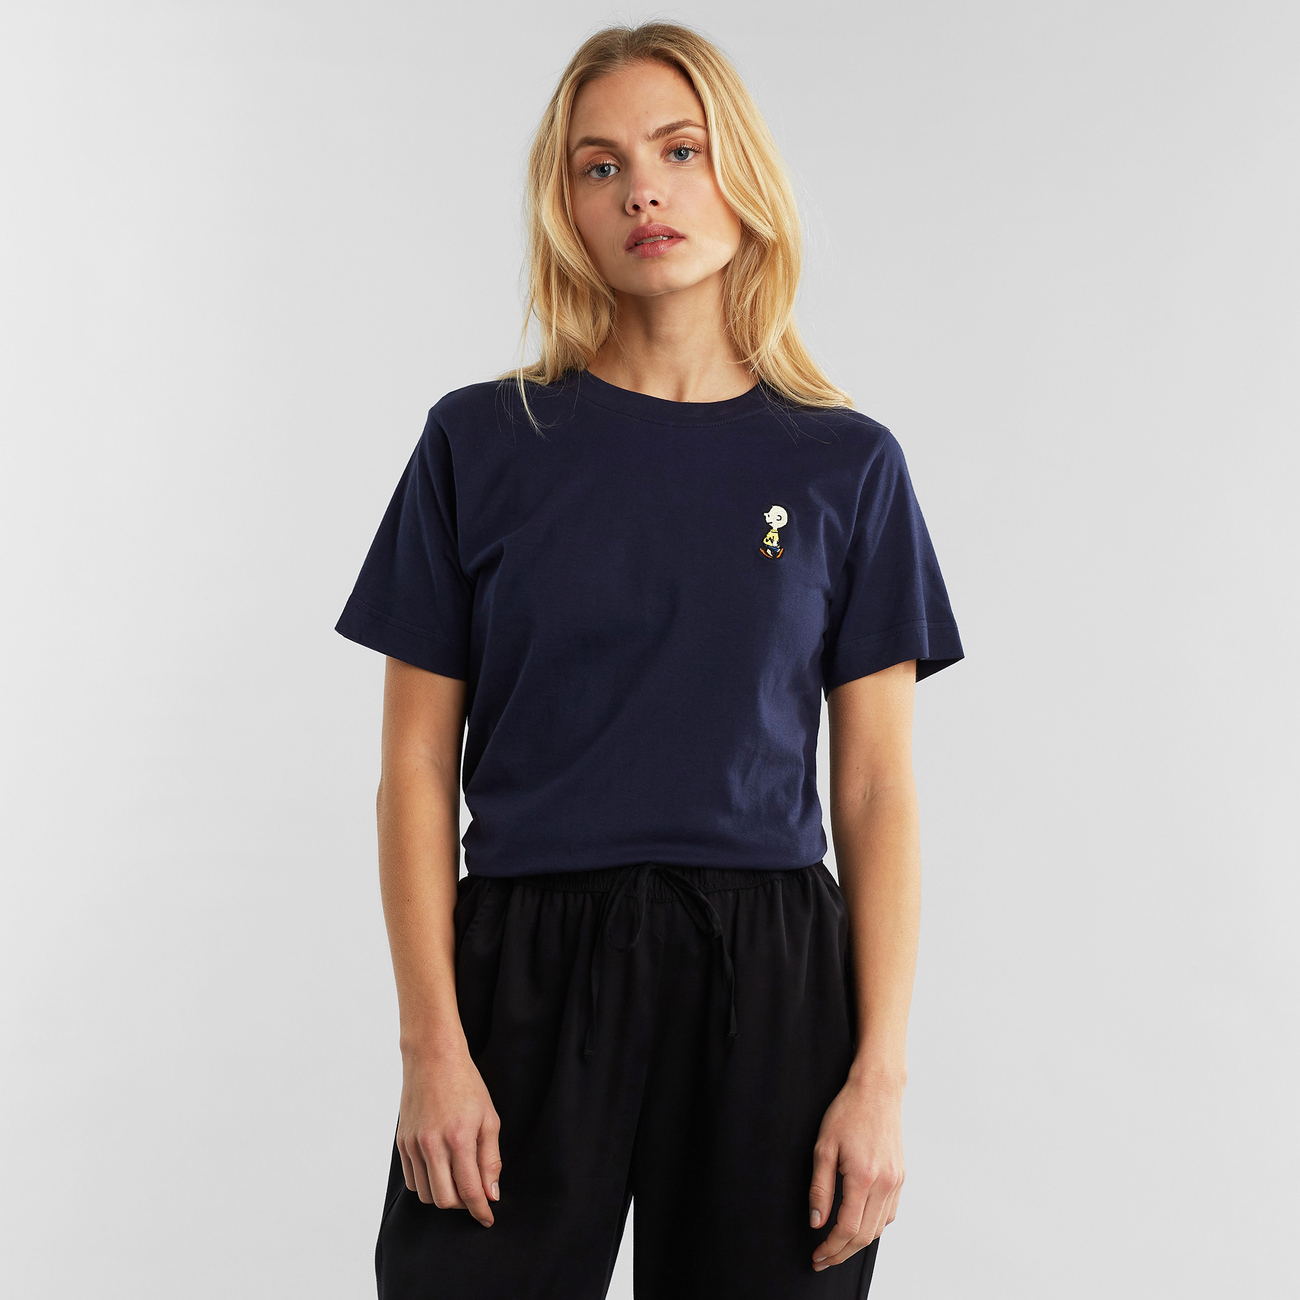 T-shirt Mysen Charlie Brown Embroidery Navy